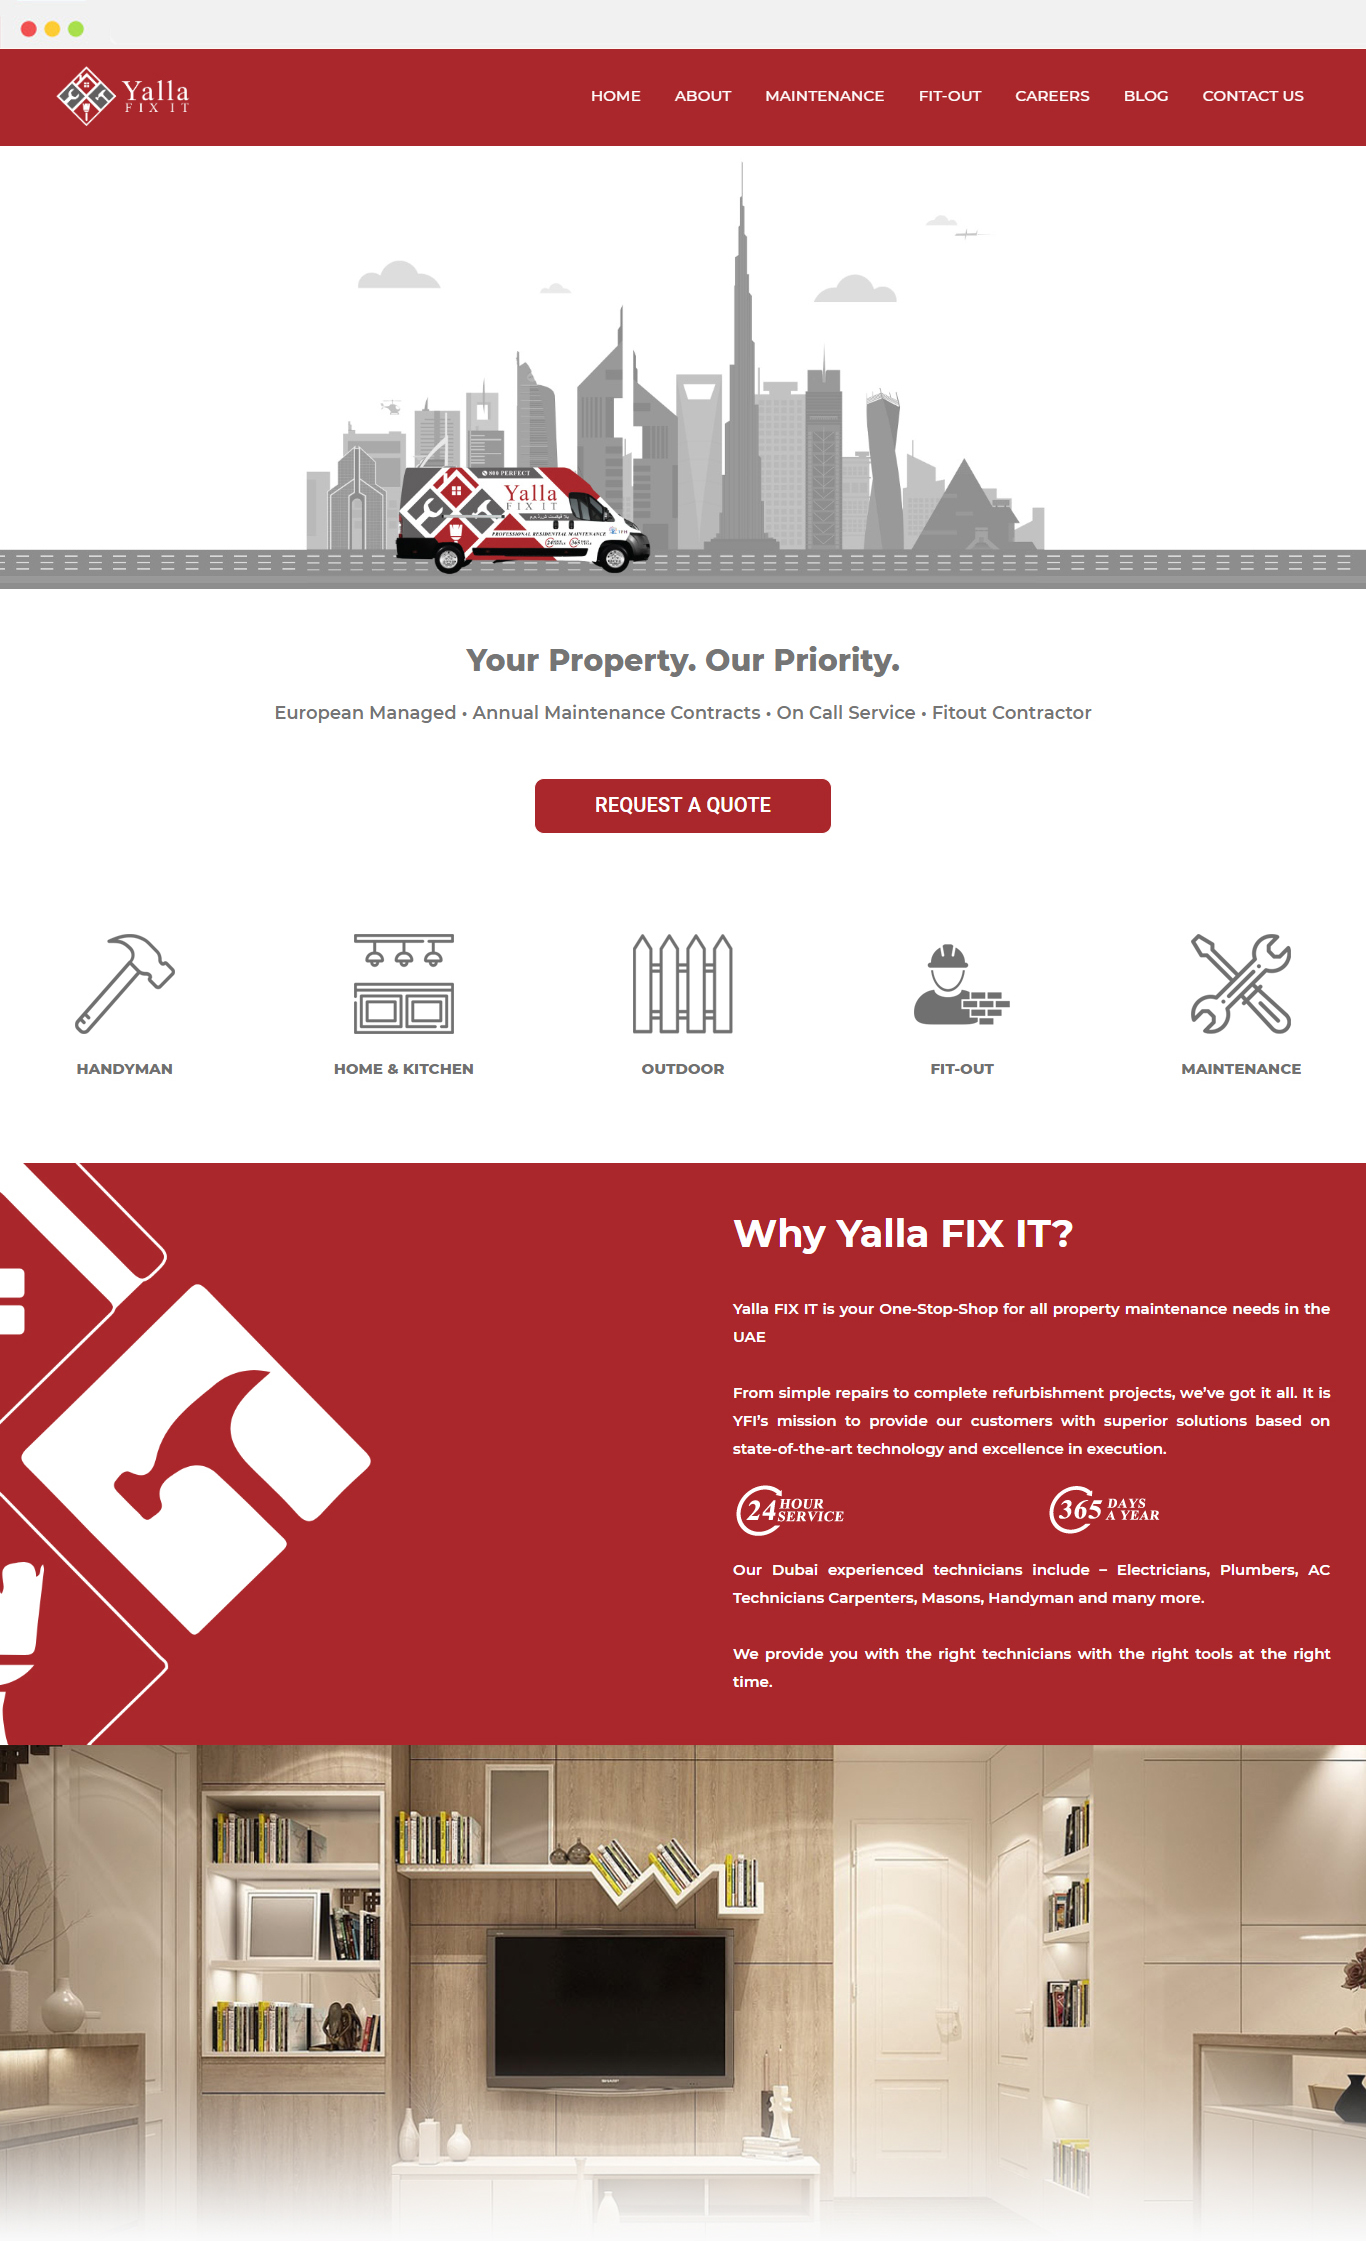 v7 digital agency web development client yalla motors